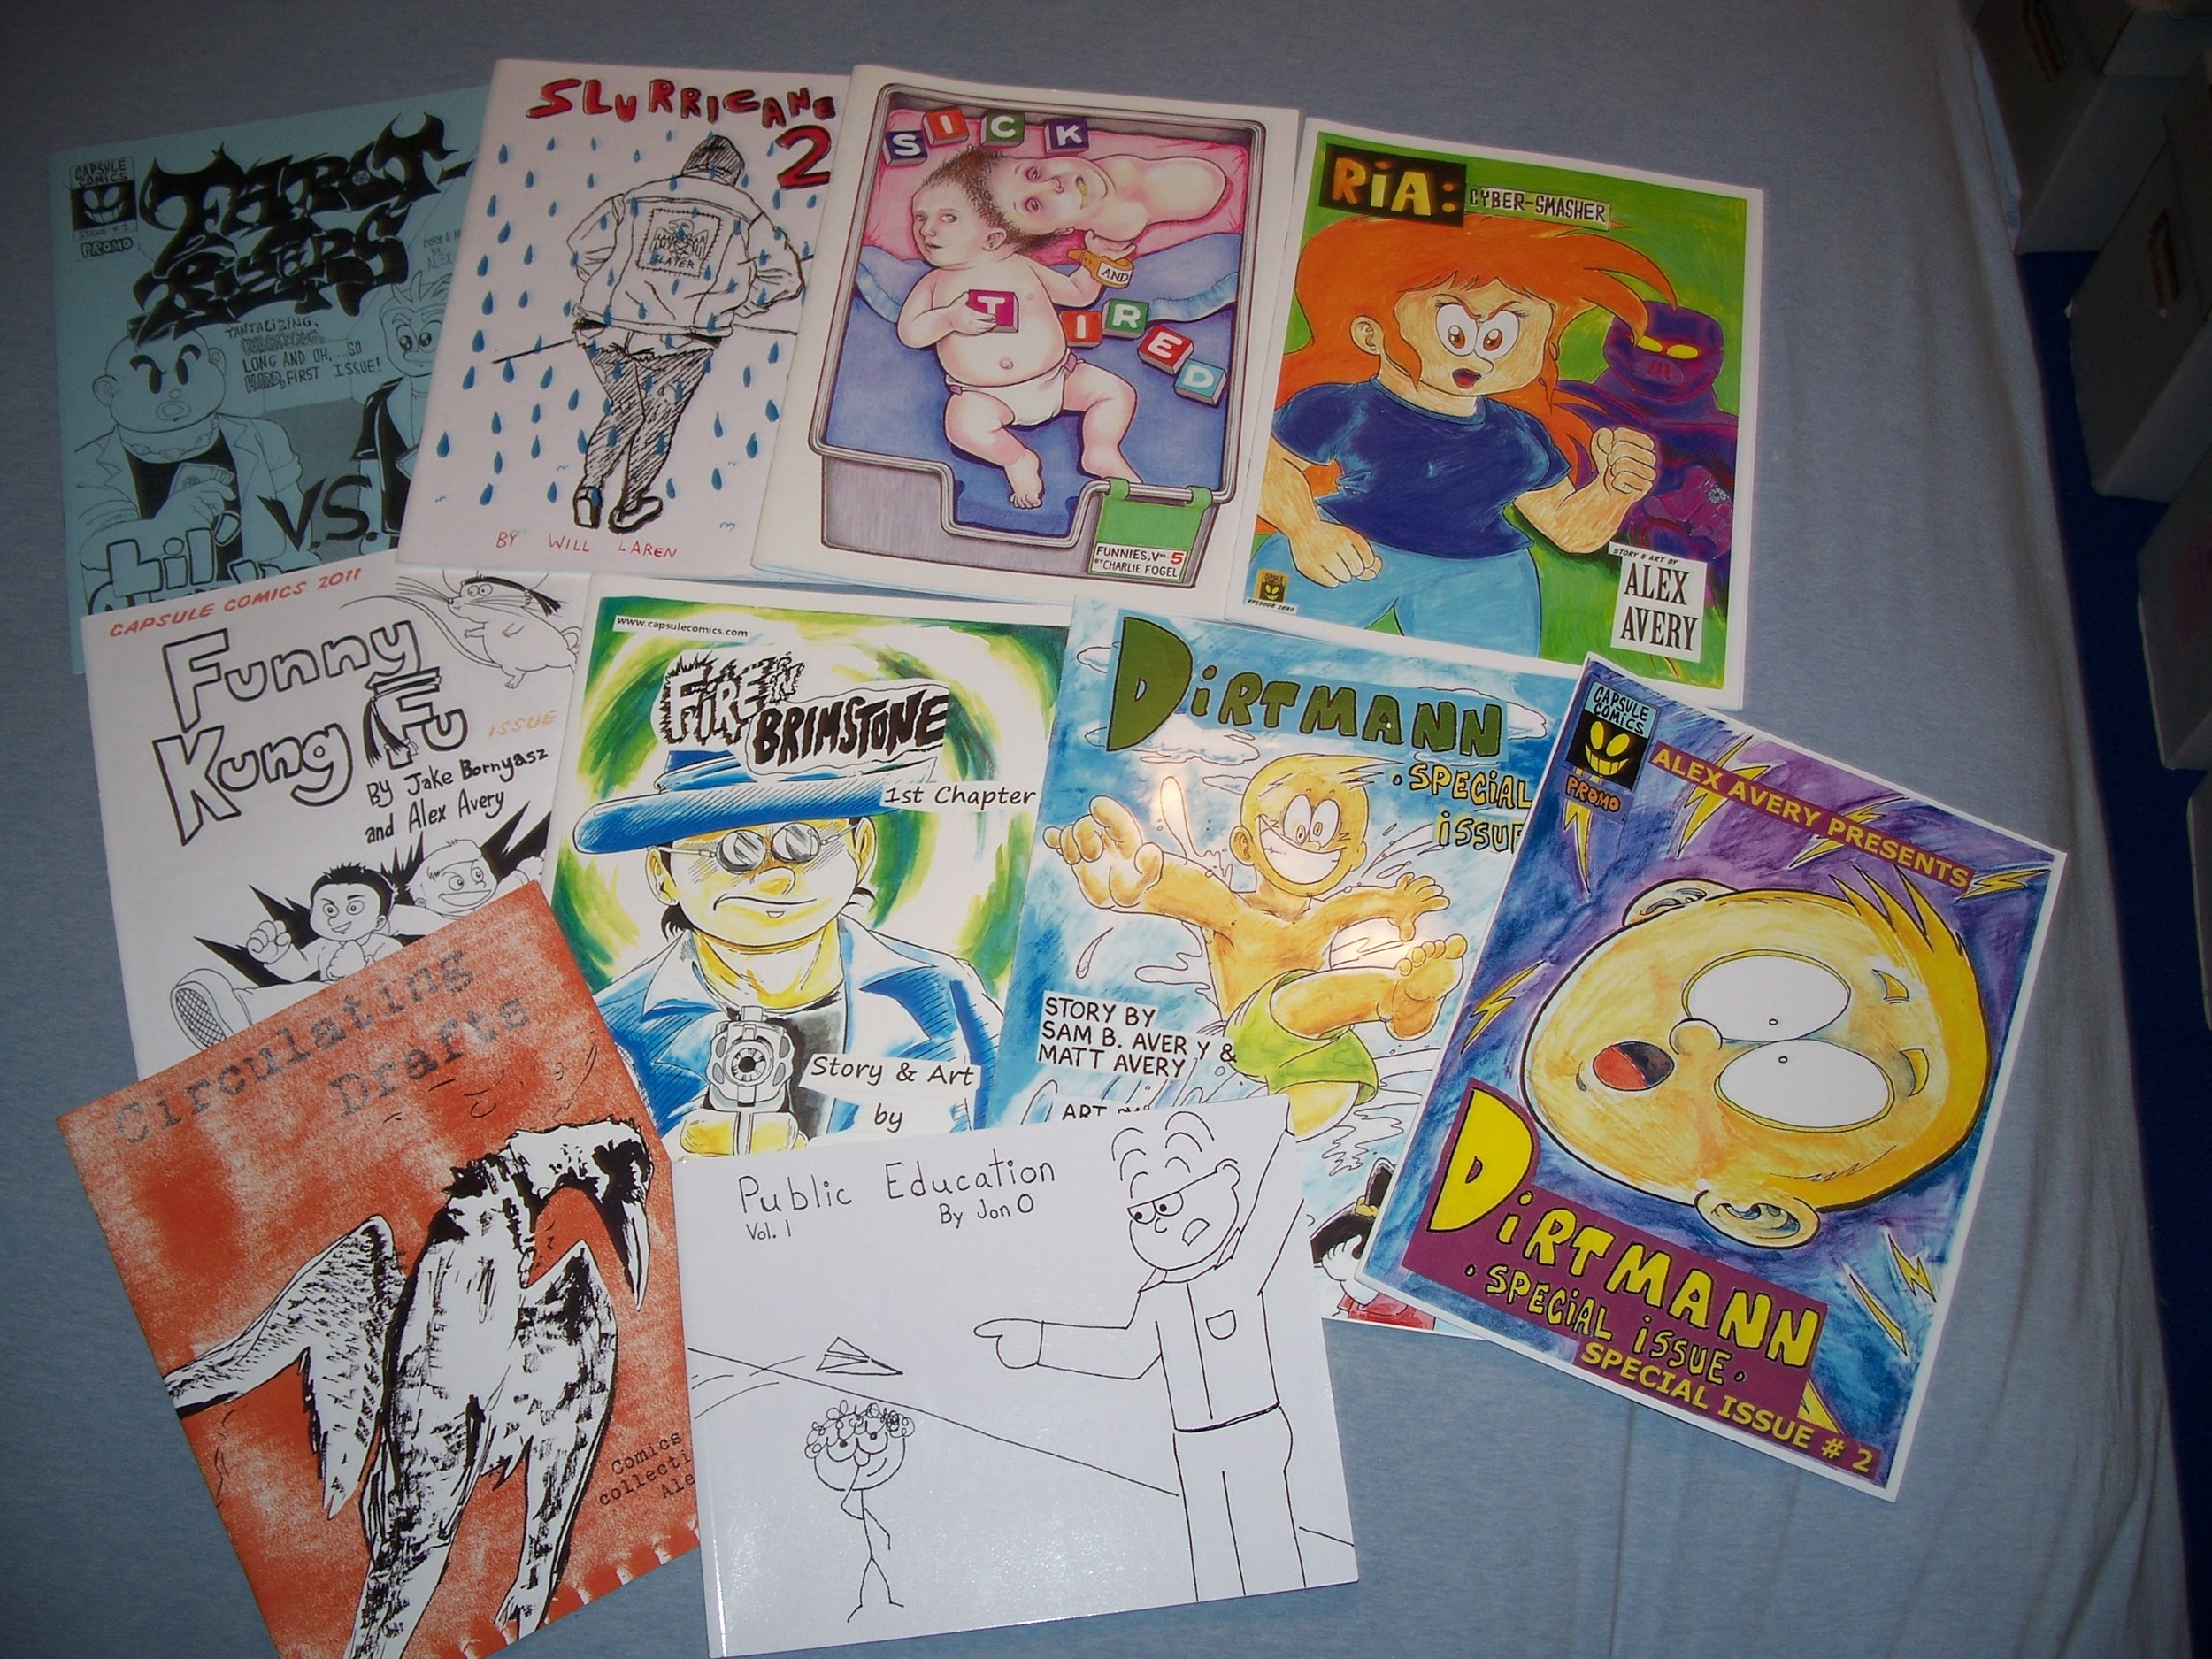 Some over-sized comix